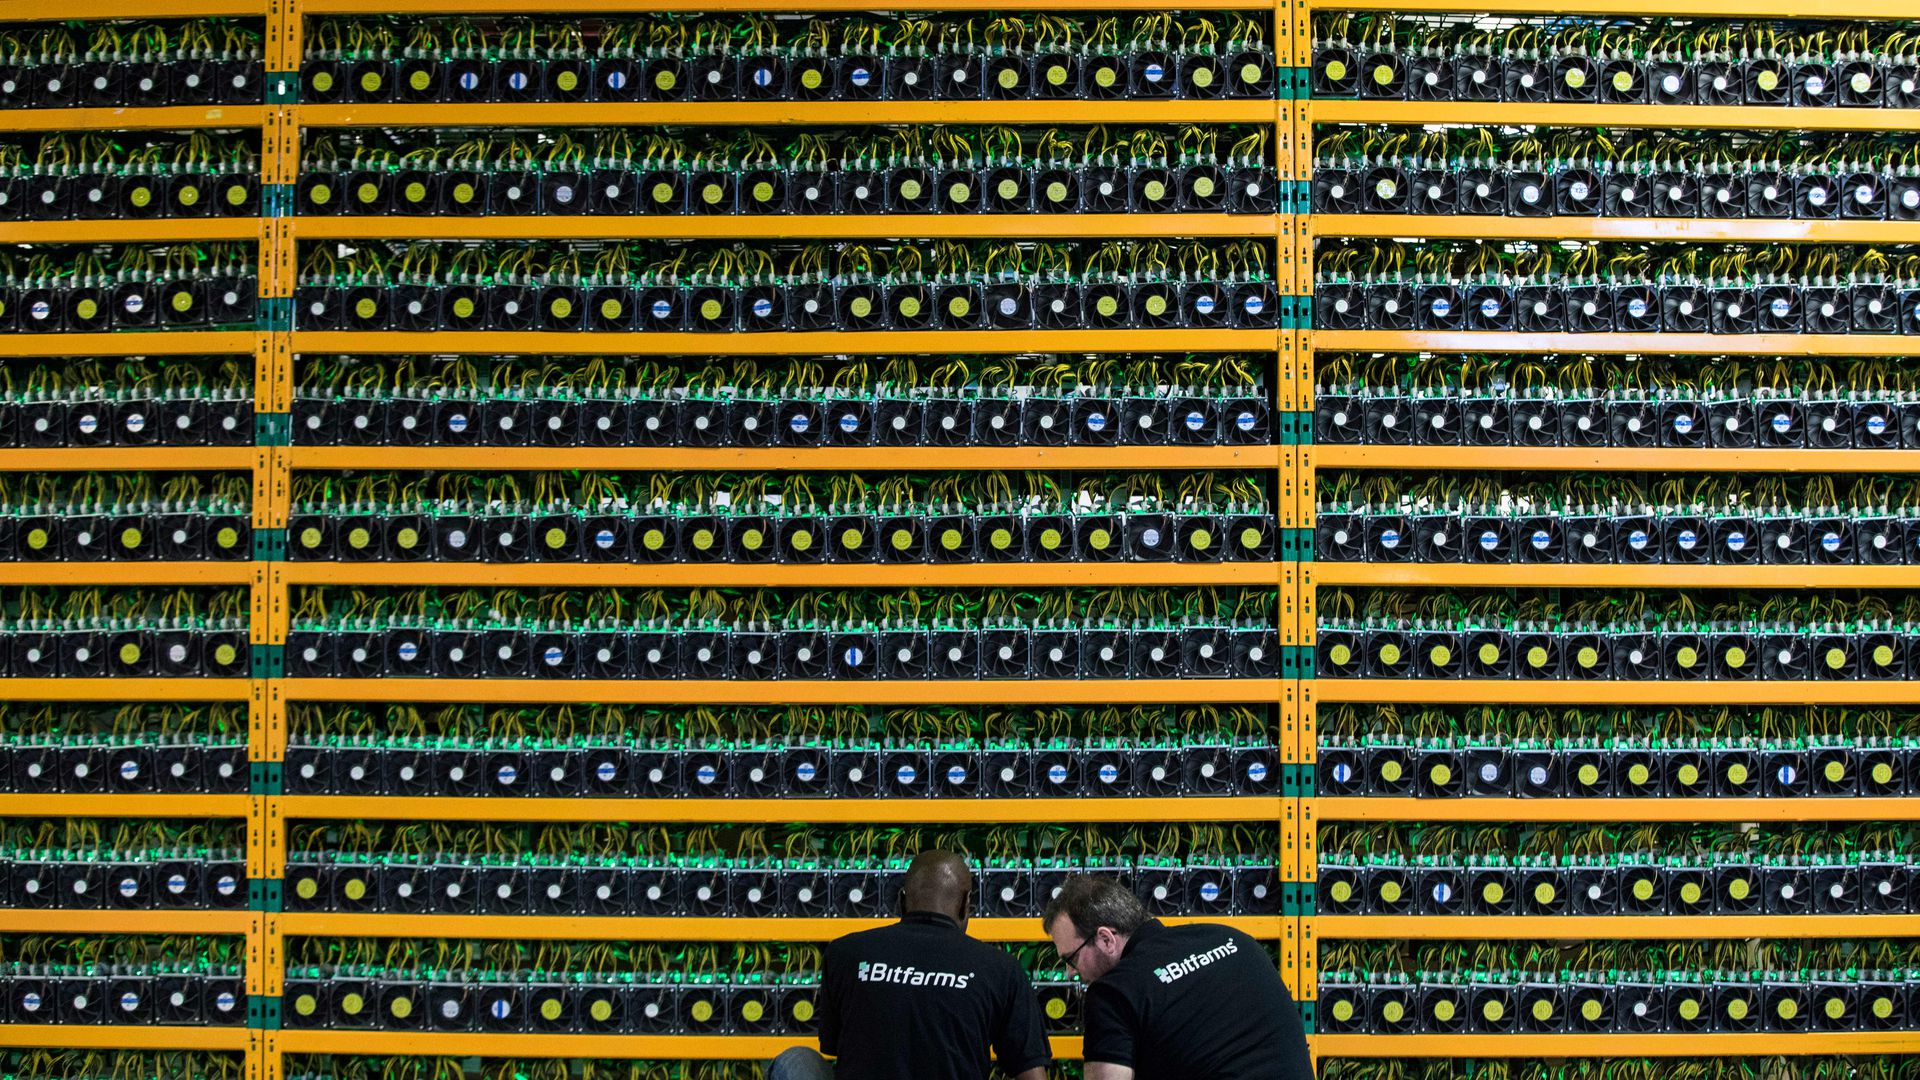 workers and servers at a bitcoin mining facility